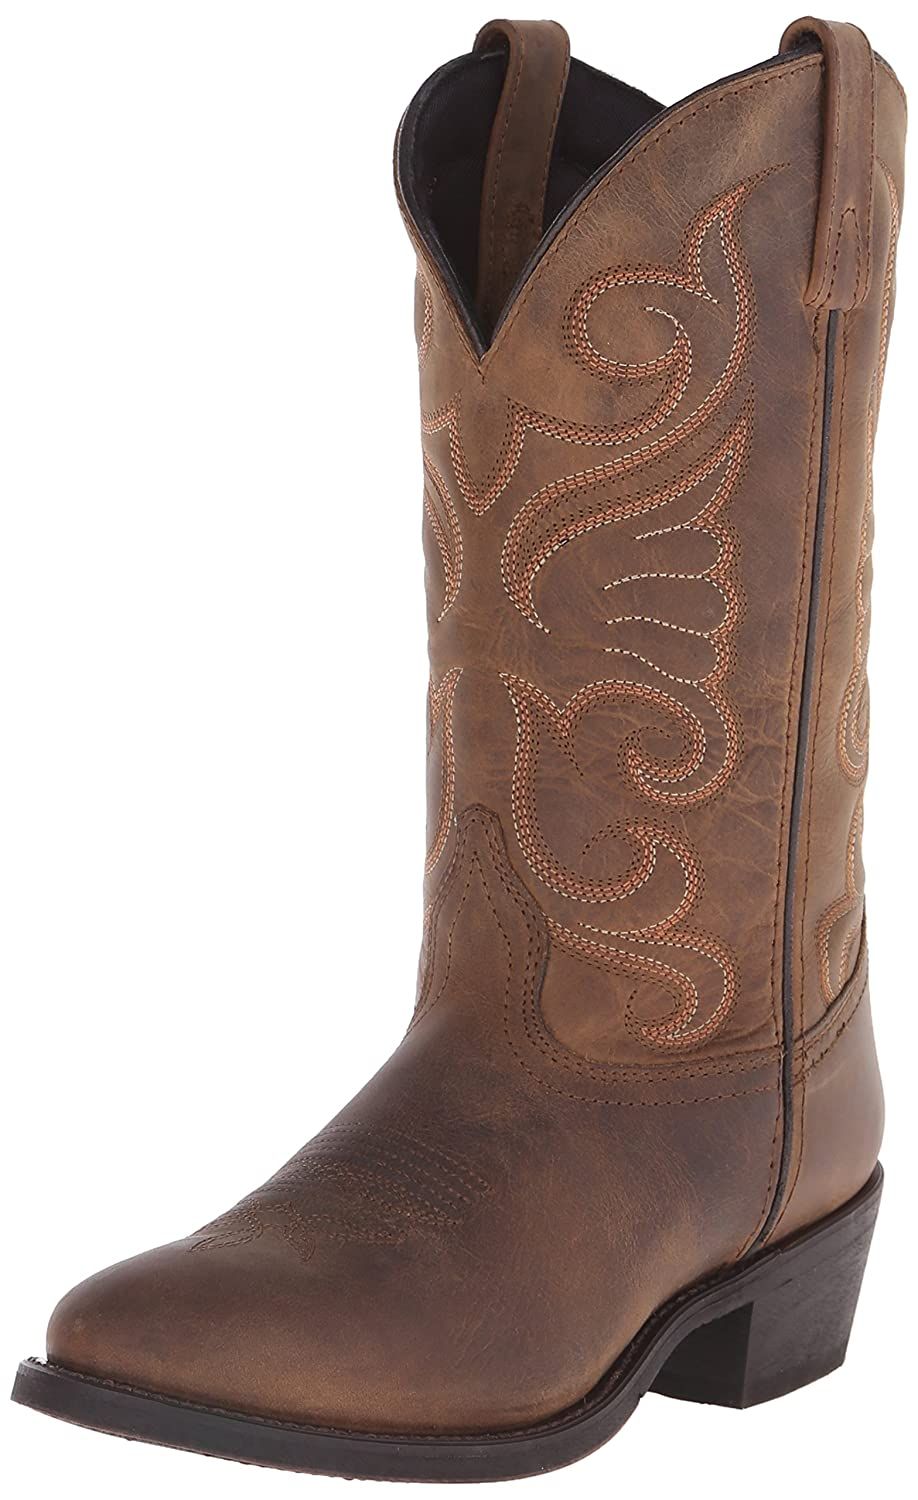 Laredo Women's Bridget Western Boot B007PKLZAW 7.5 B(M) US|Tan